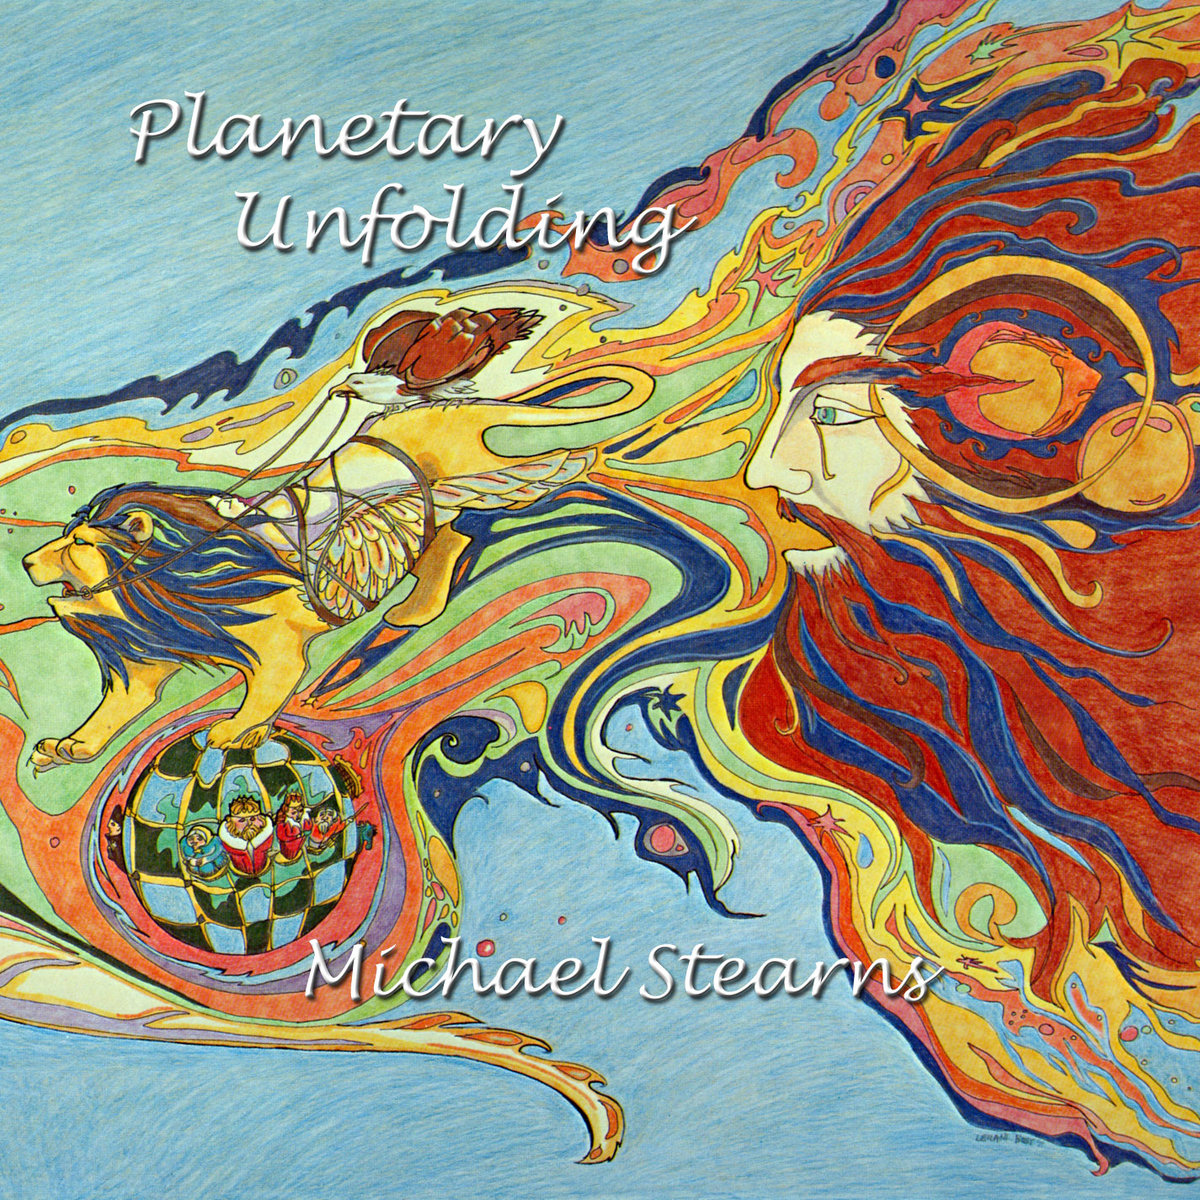 Michael Stearns | Planetary Unfolding album cover